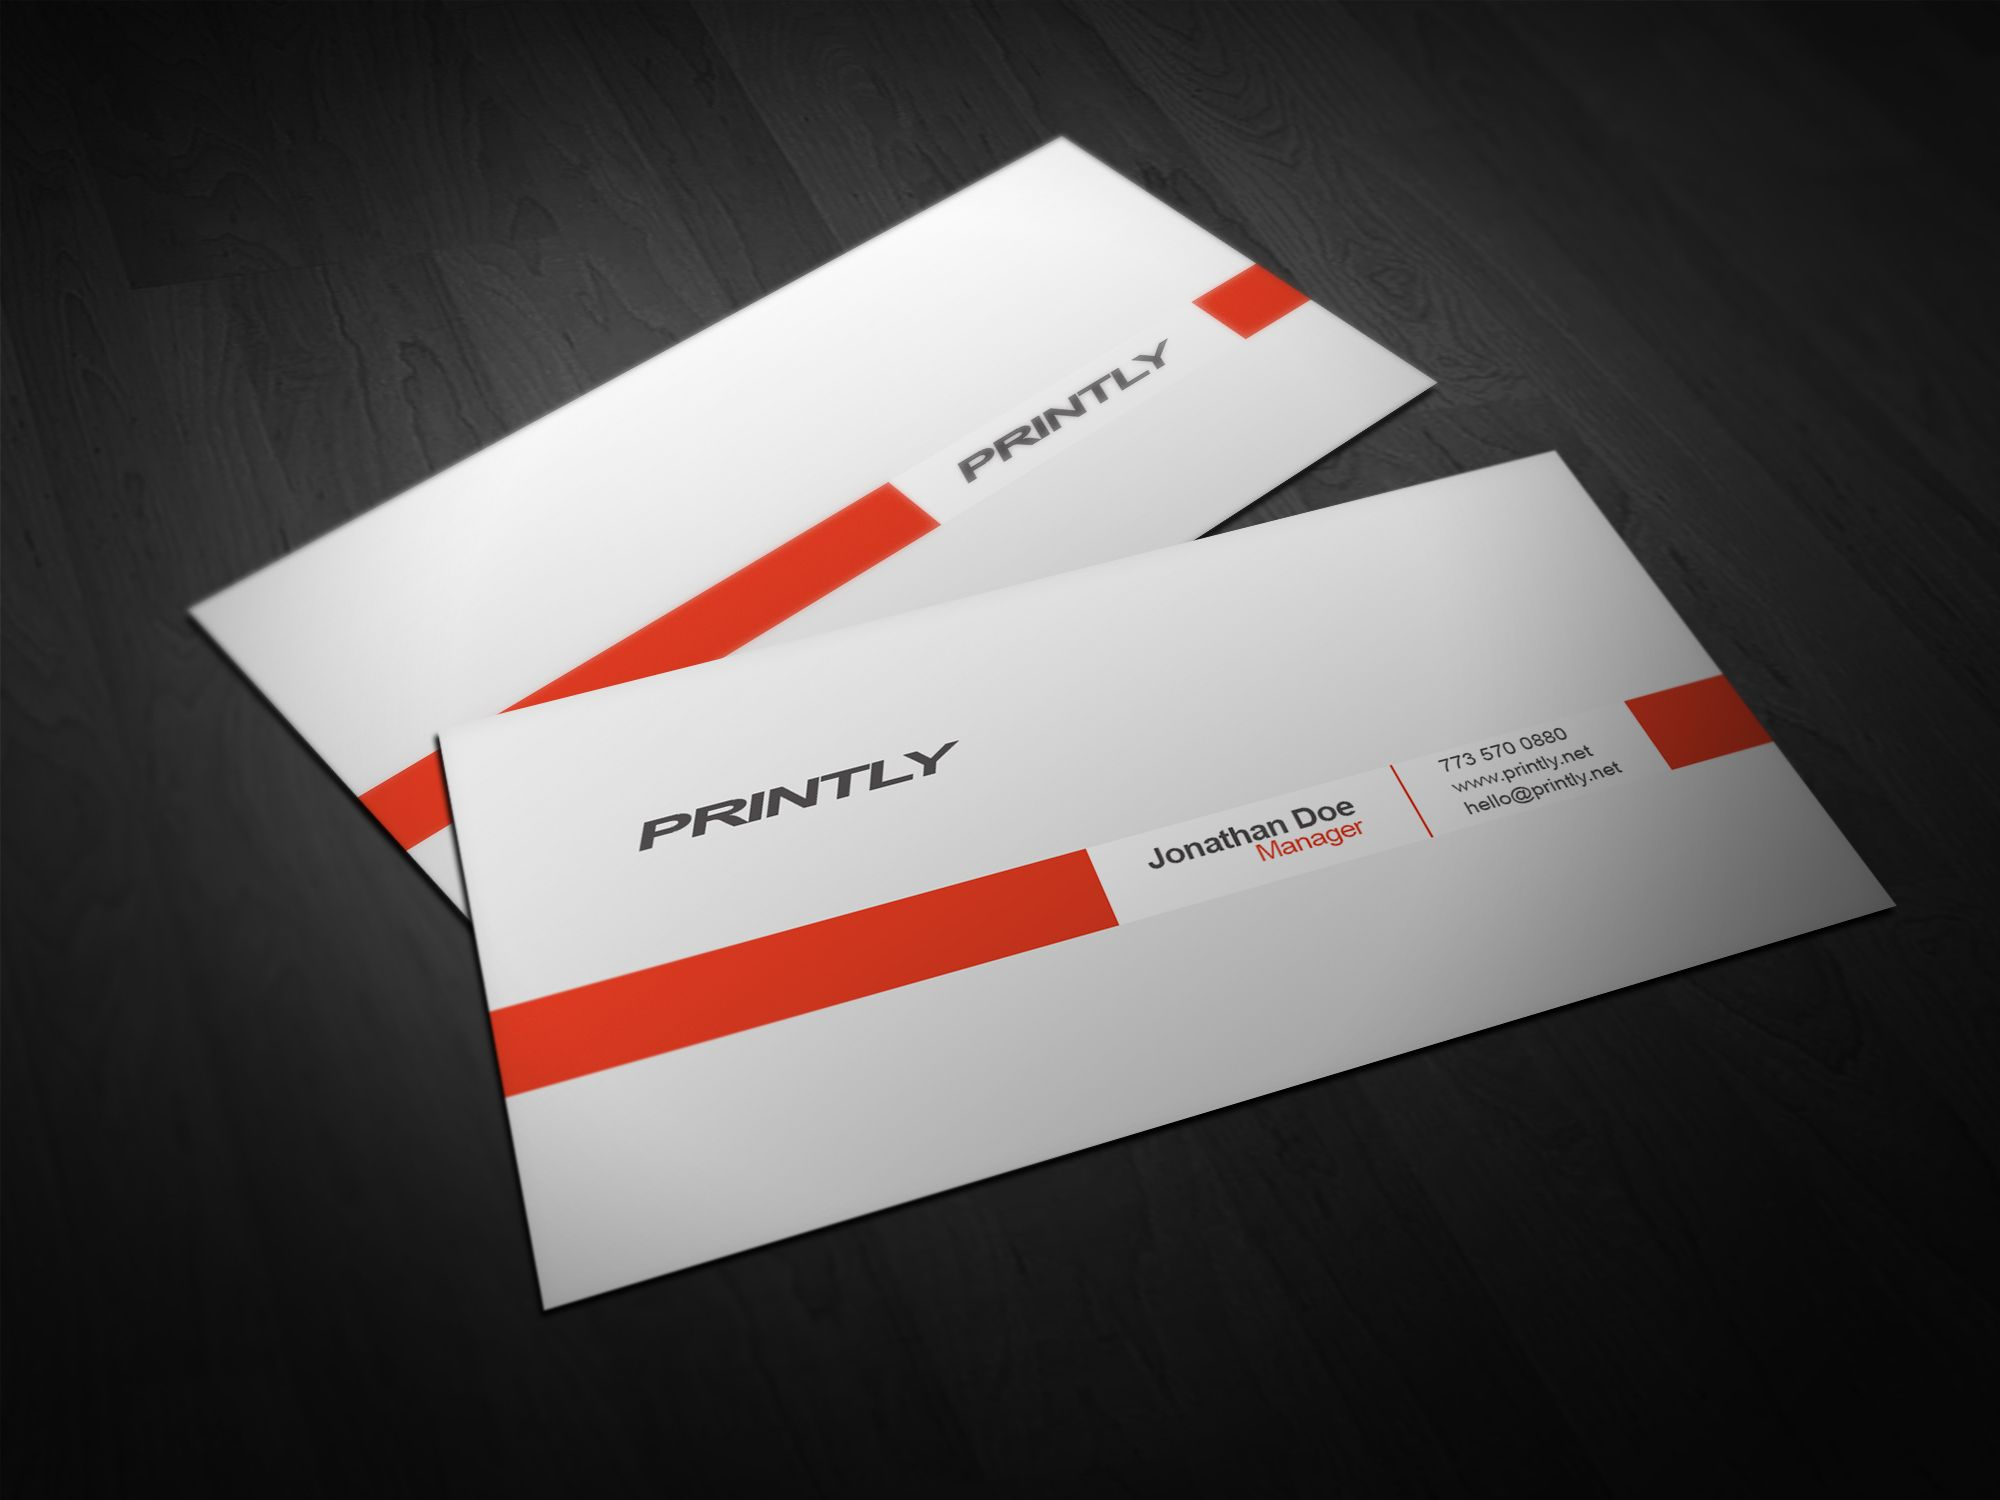 Free printly psd business card template printly design free printly psd business card template printly reheart